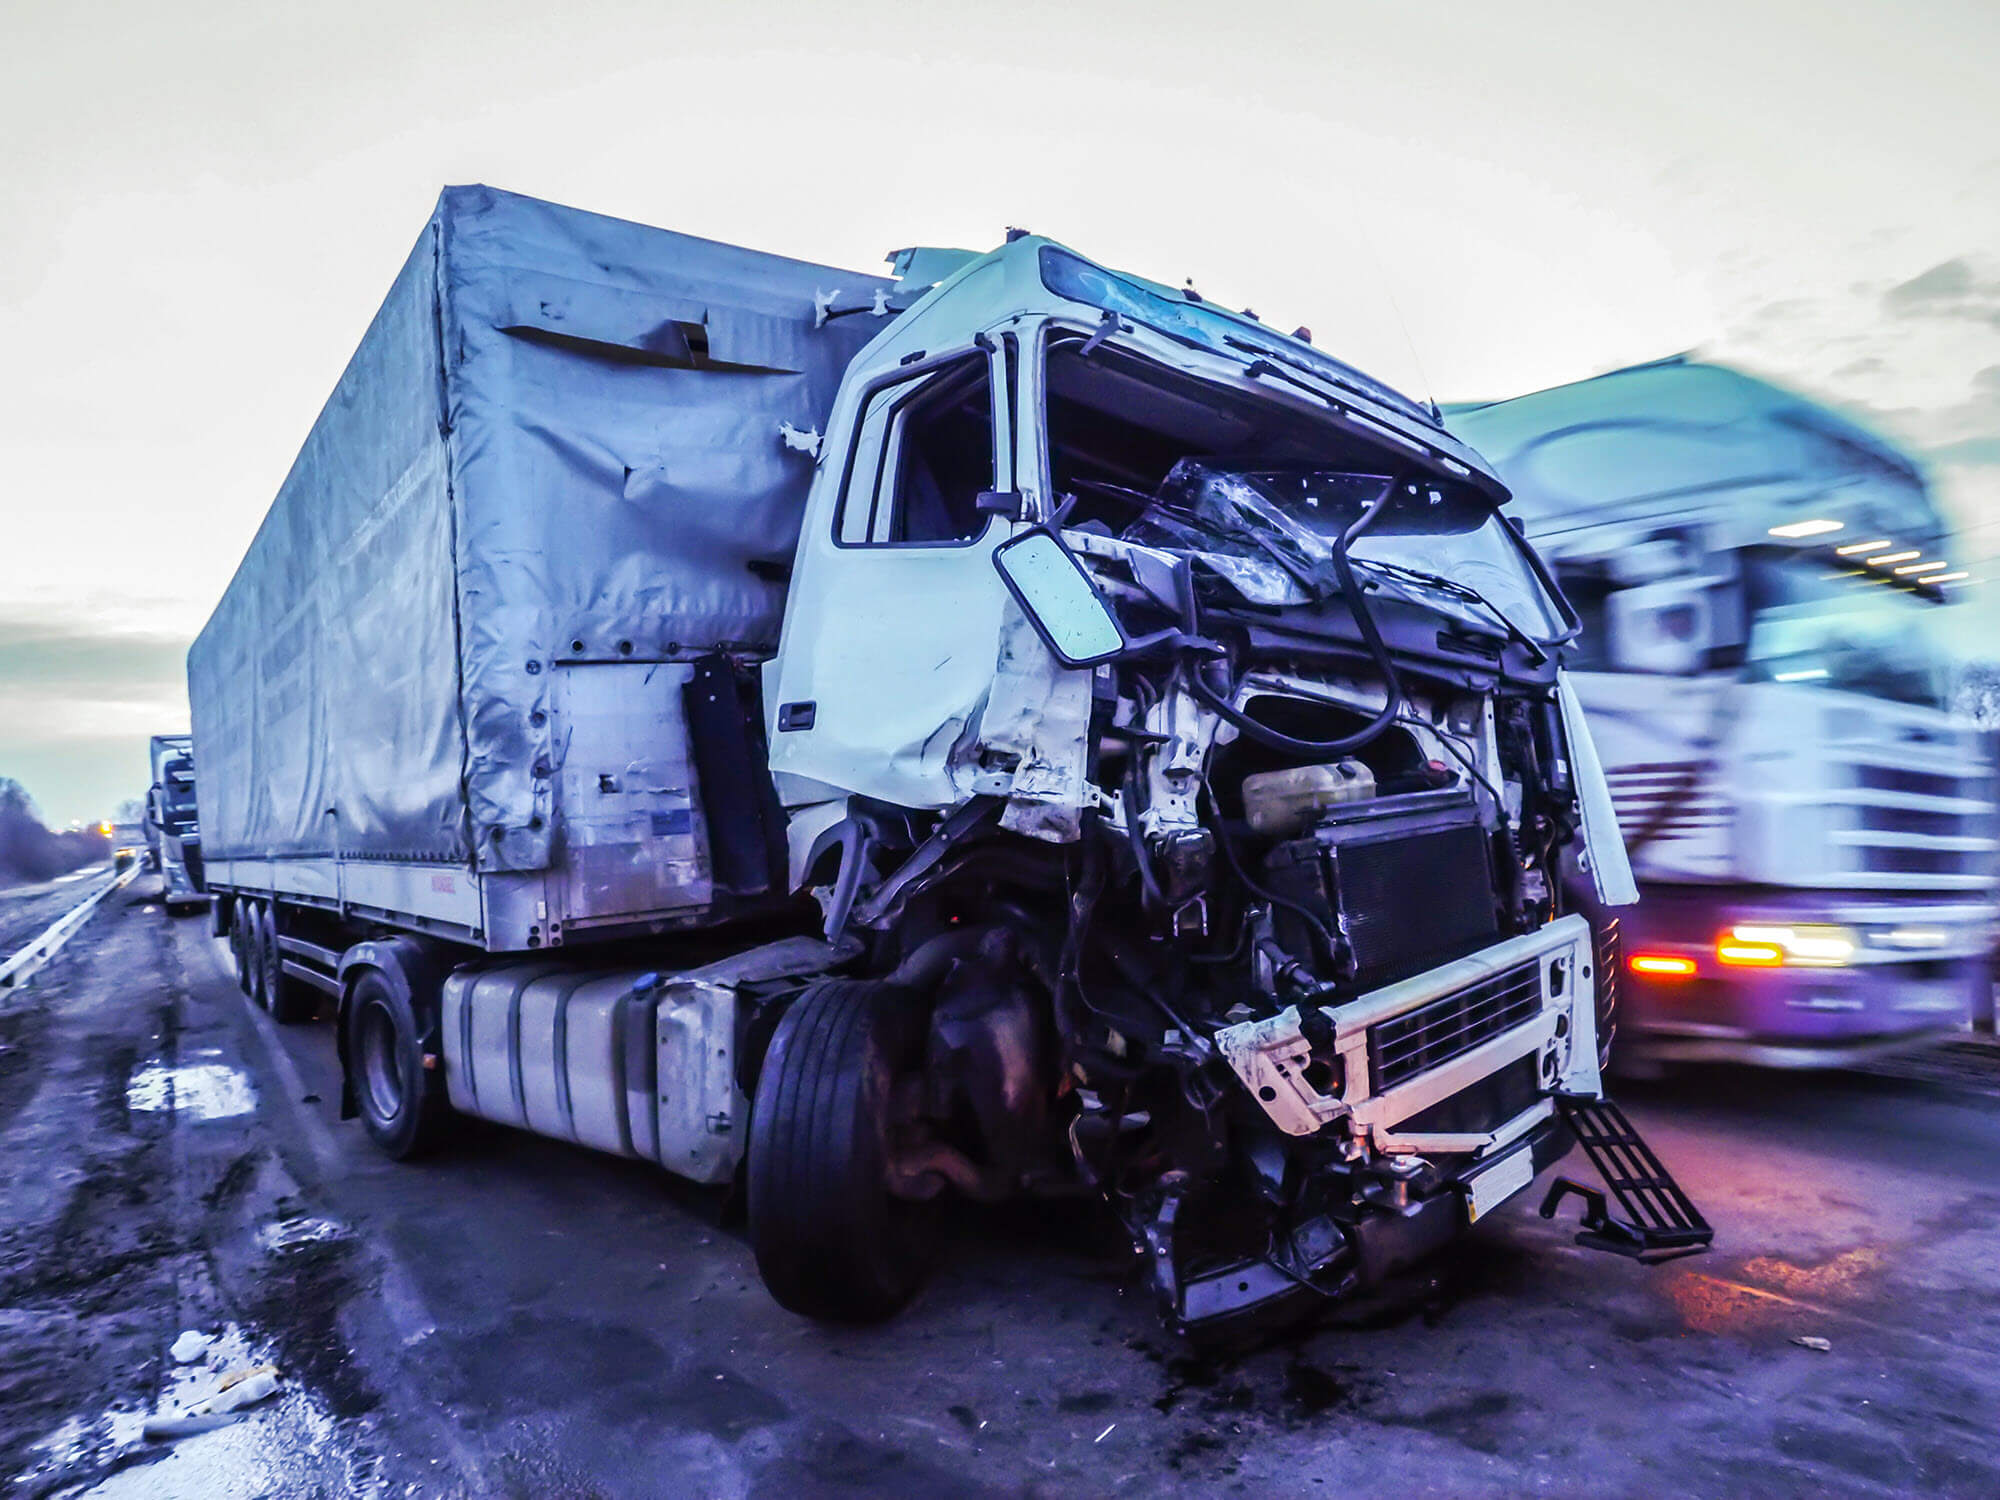 Injured in a Truck Accident? Here's What You Need to Know